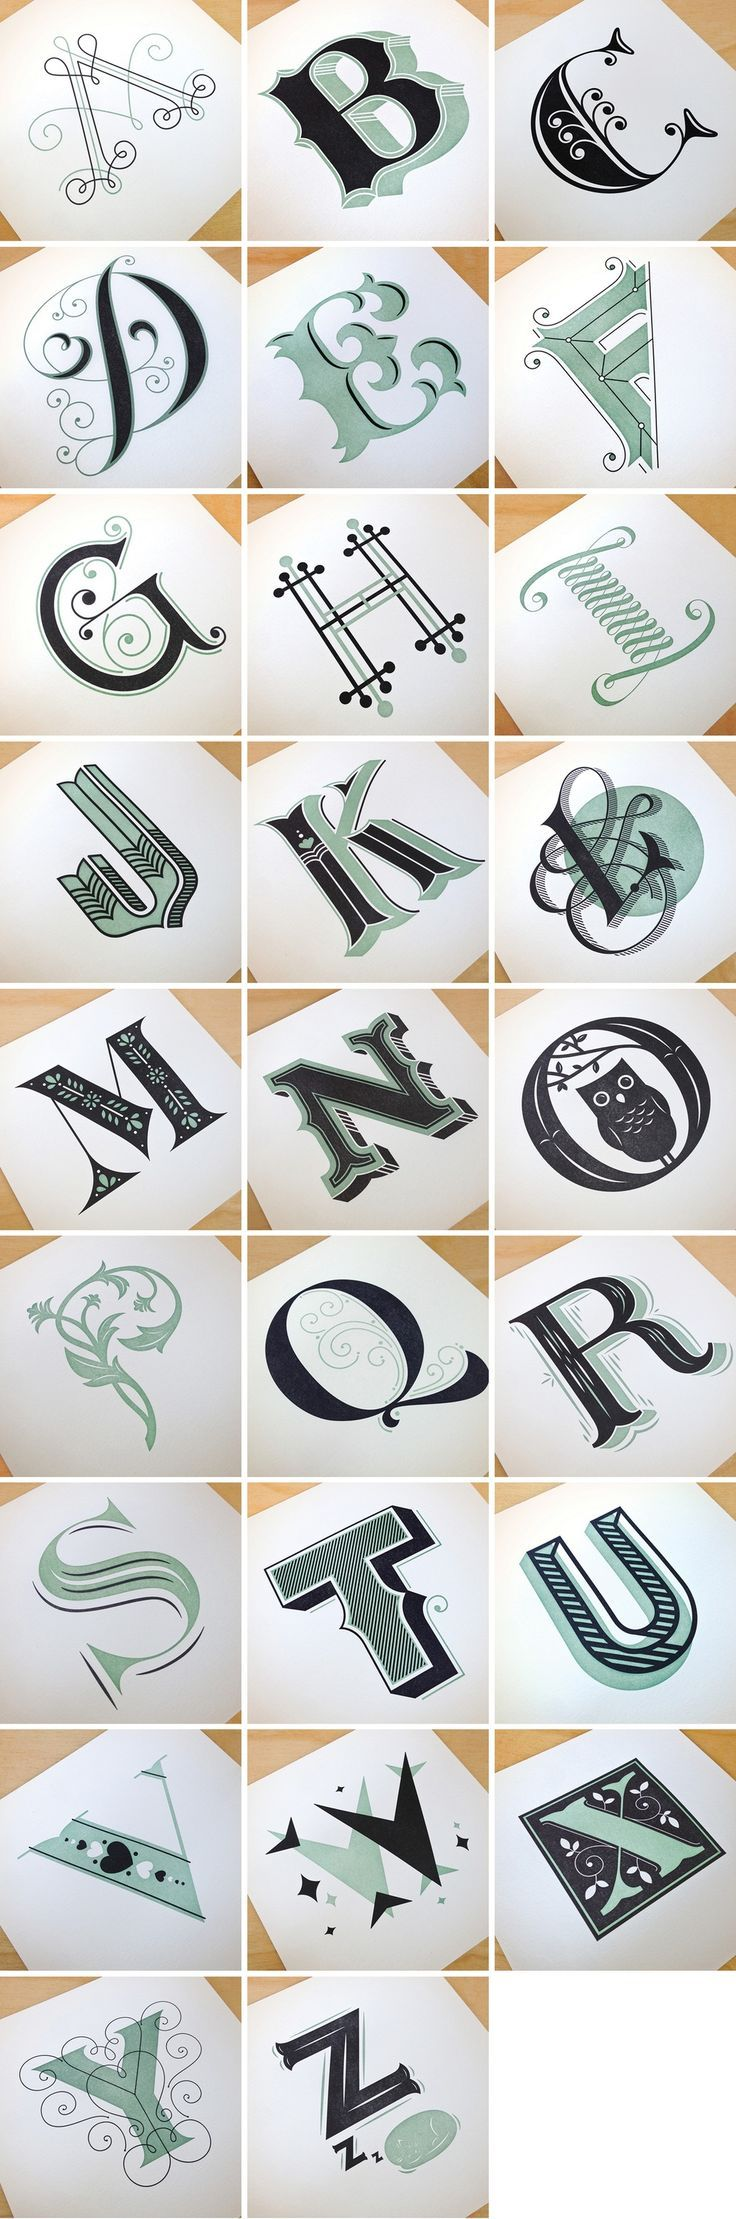 Image of Drop Cap Letterpress Prints